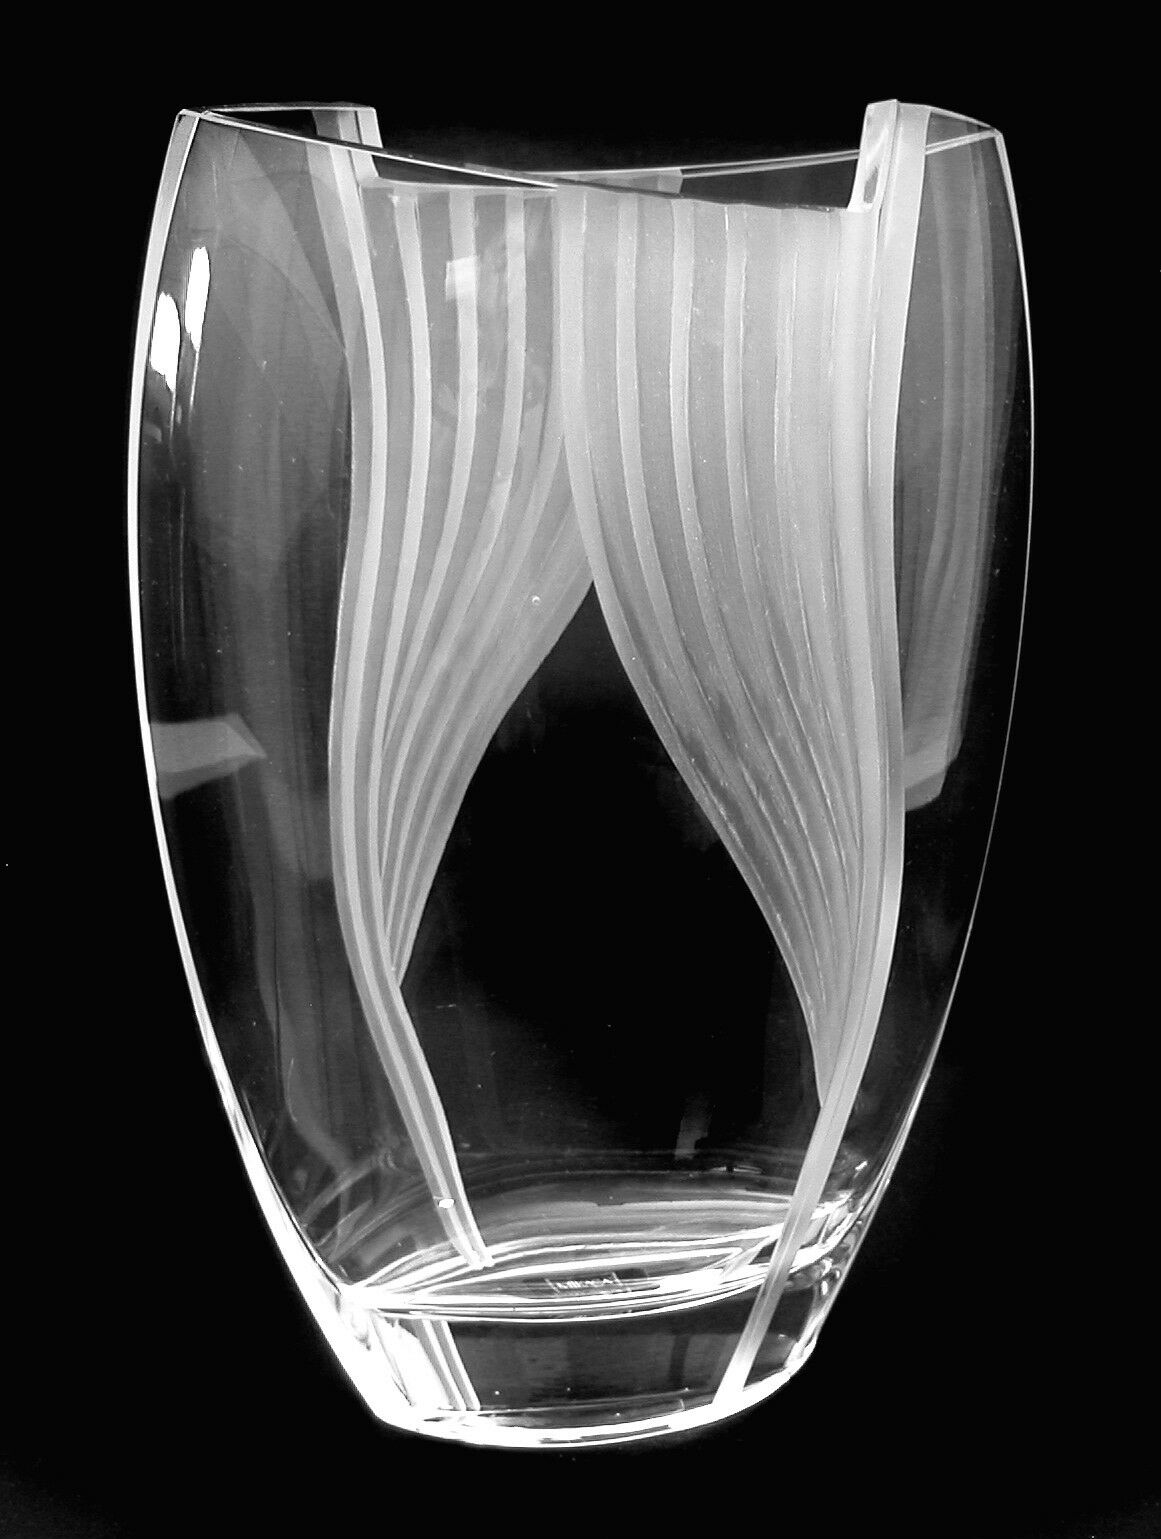 Glass pottery glass mikasa crystal 12 ellipse vase curtain call pattern new stunning reviewsmspy